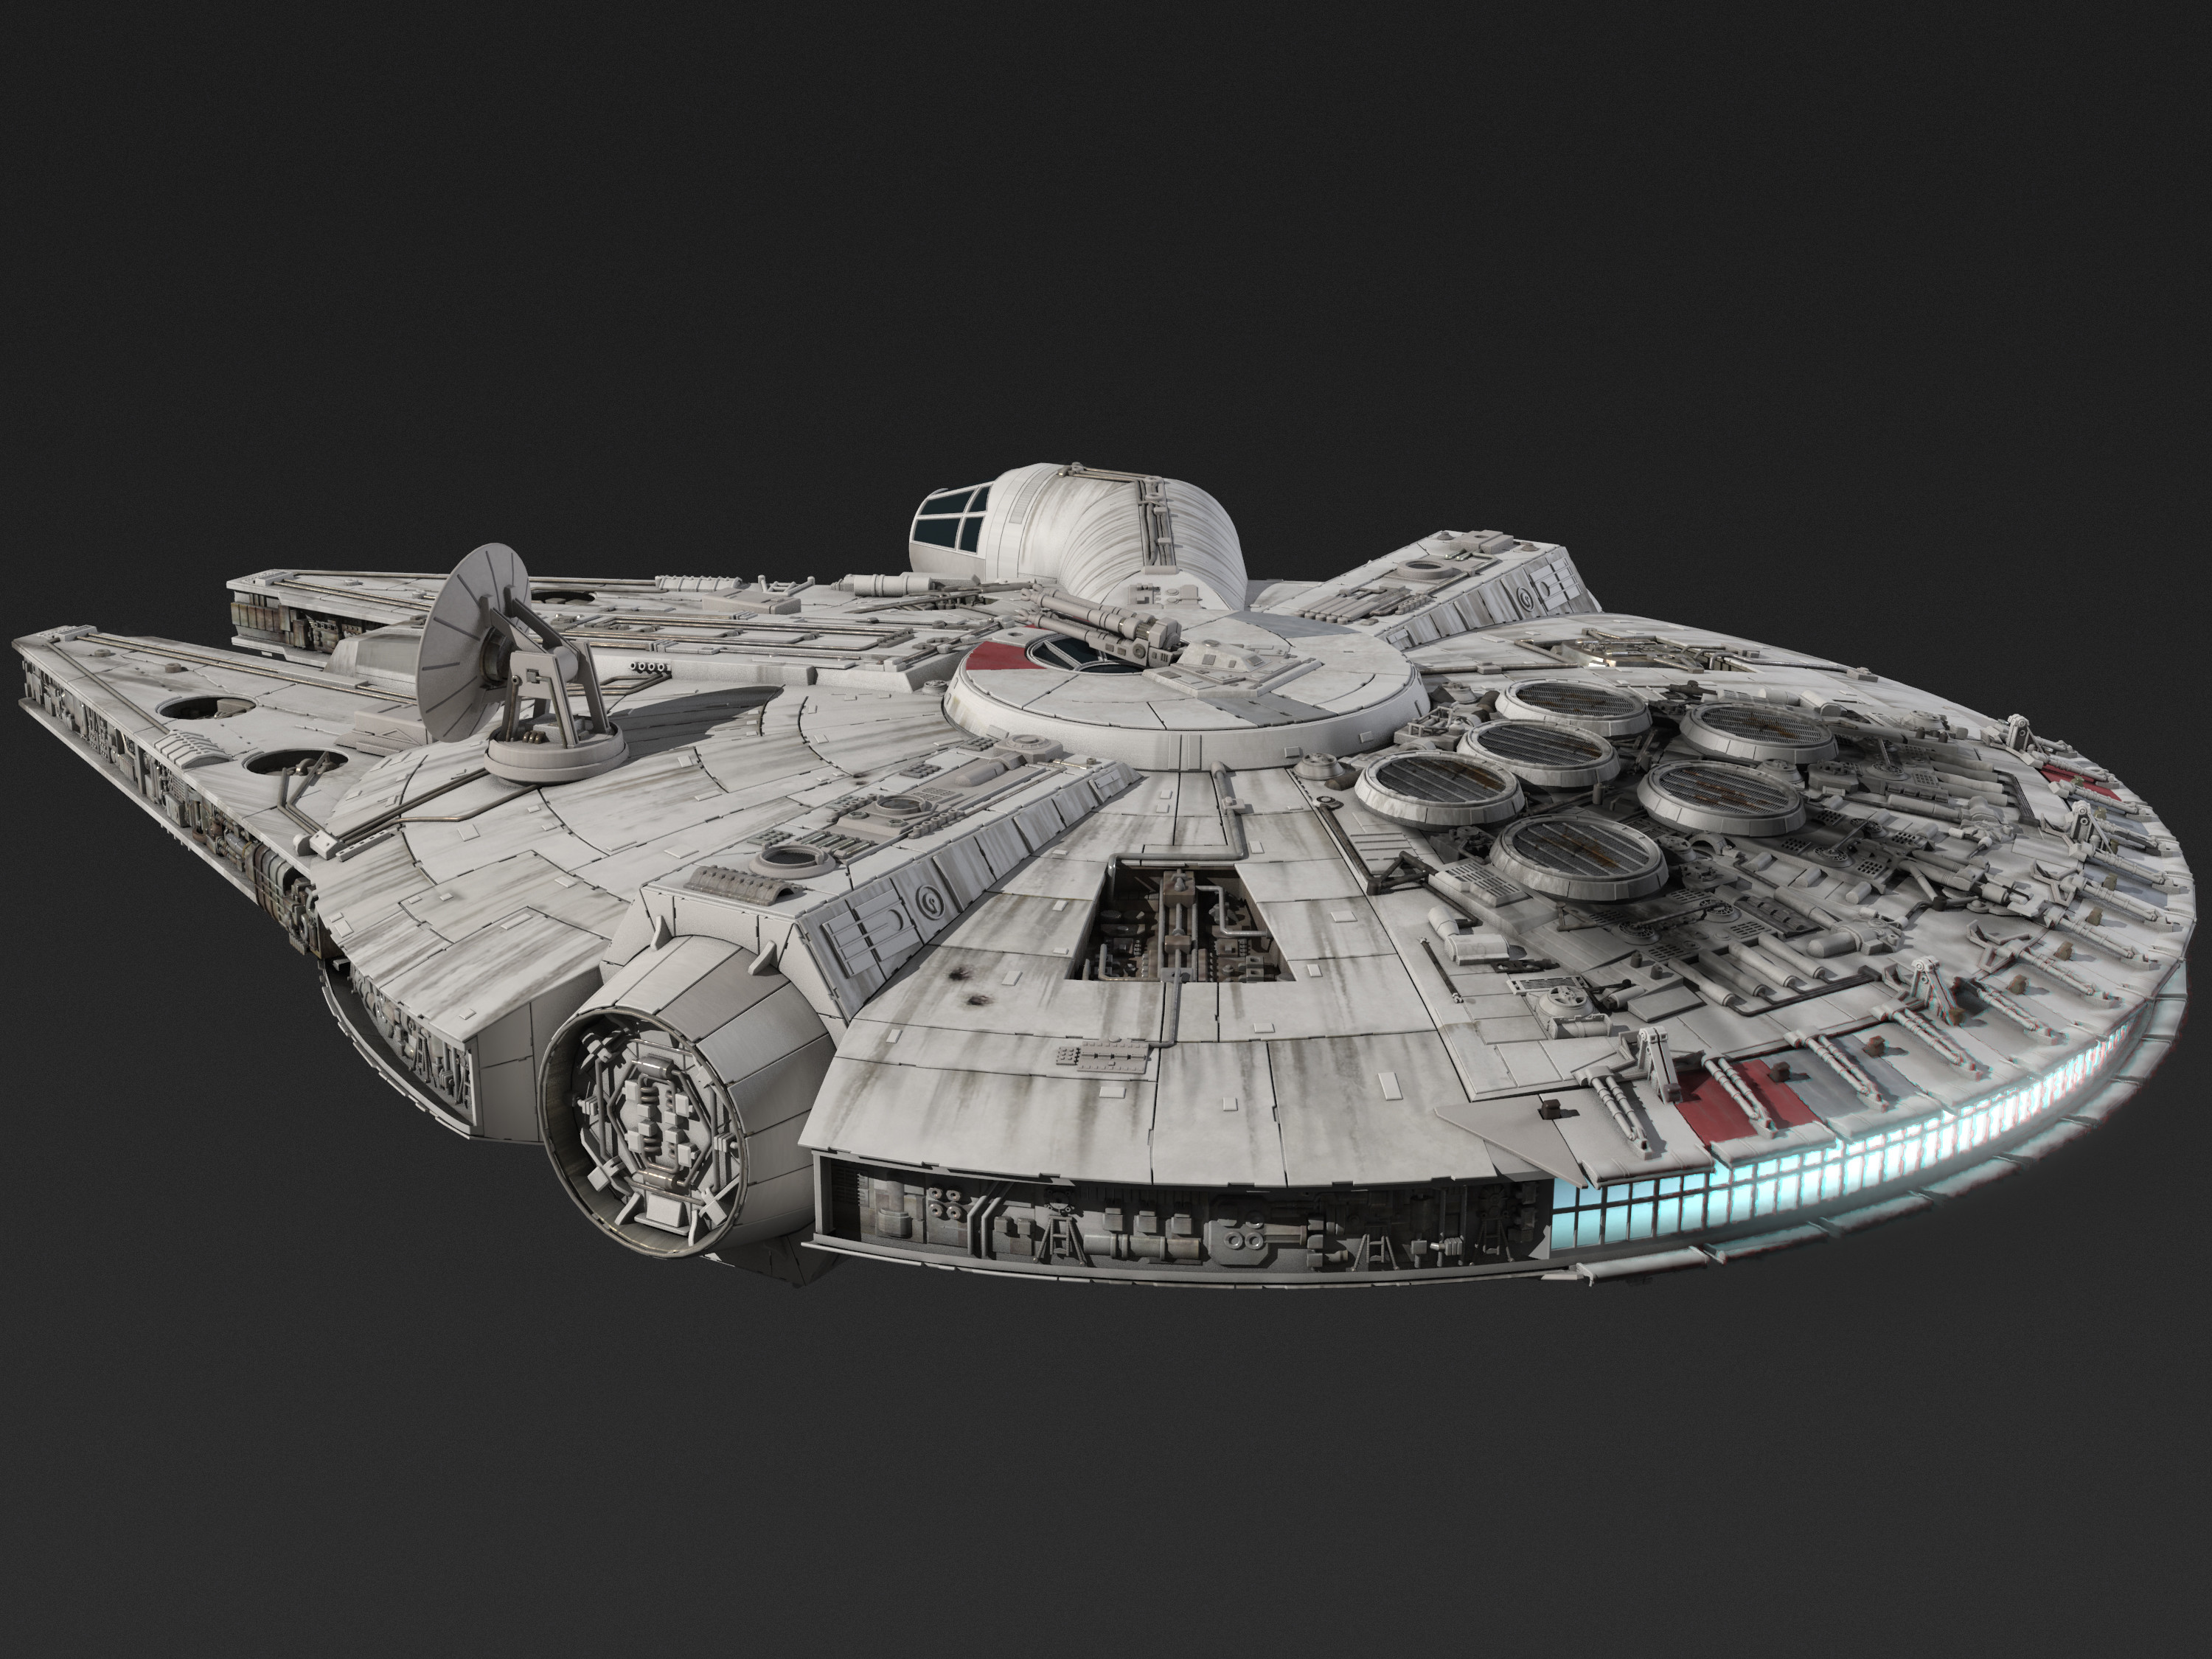 Millenium Falcon spacecraft 3d model